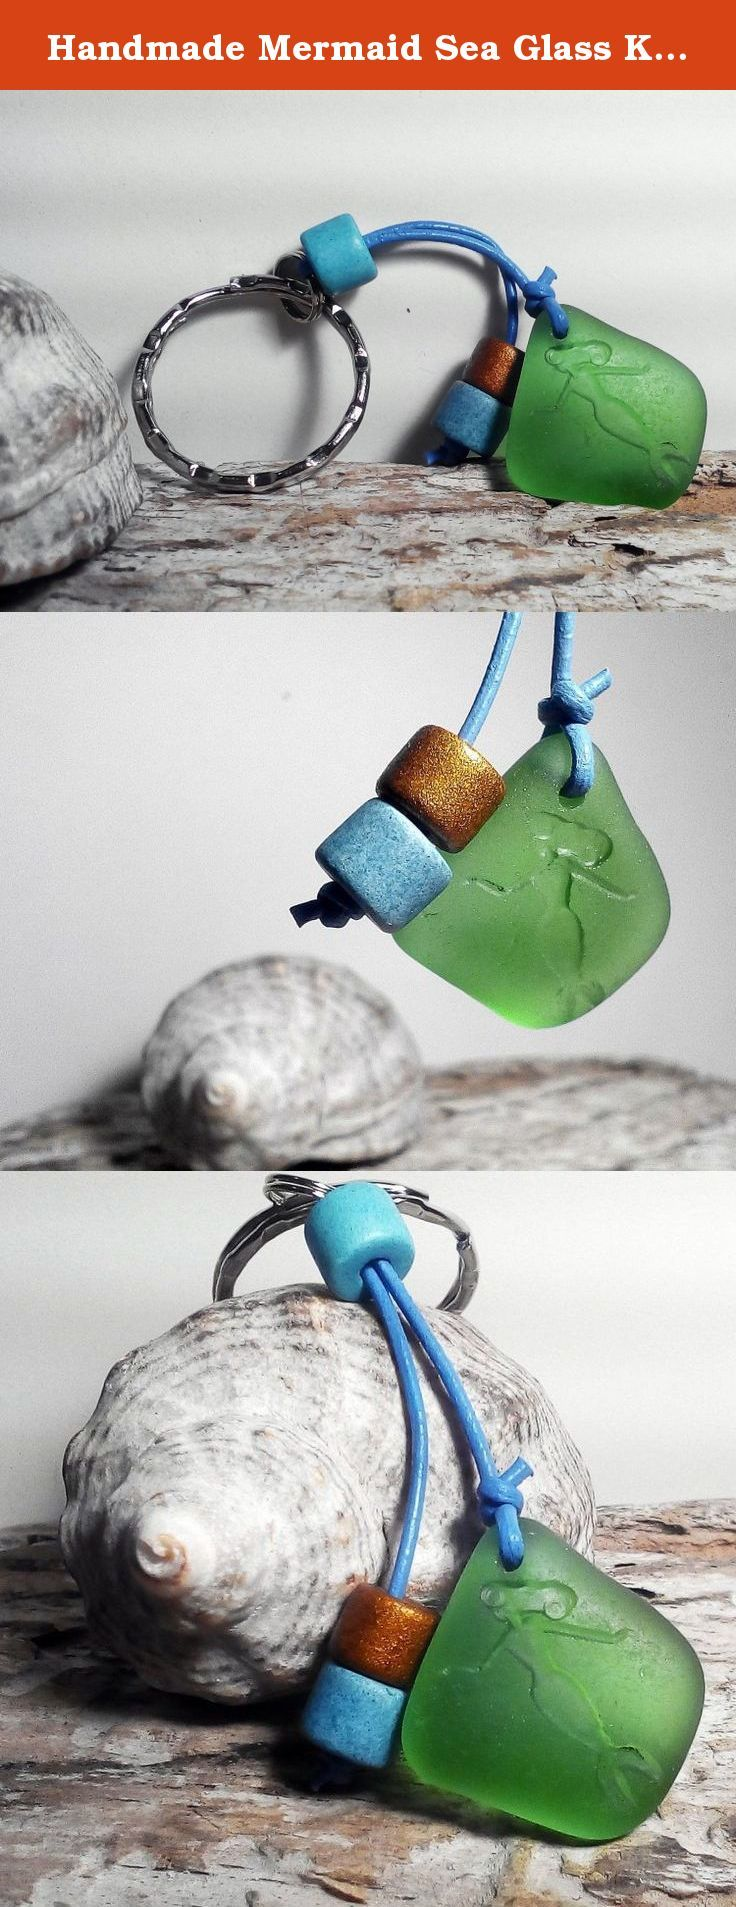 """Handmade Mermaid Sea Glass Keychain Bag Charm Mermaid Beach Accessories. This one-of-a-kind seaglass mermaid charm would be a wonderful gift for real mermaid! Small but elegant and unique thing for your look! Natural green seaglass with engraved mermaid combines with rustic ceramic beads. Also can be used as attachment to your bag. Size of seaglass - about 1"""" / 2,5 cm. This keychain will come beautifully boxed. This sea glass was found on the Black Sea shore near Varna city, Bulgaria by…"""